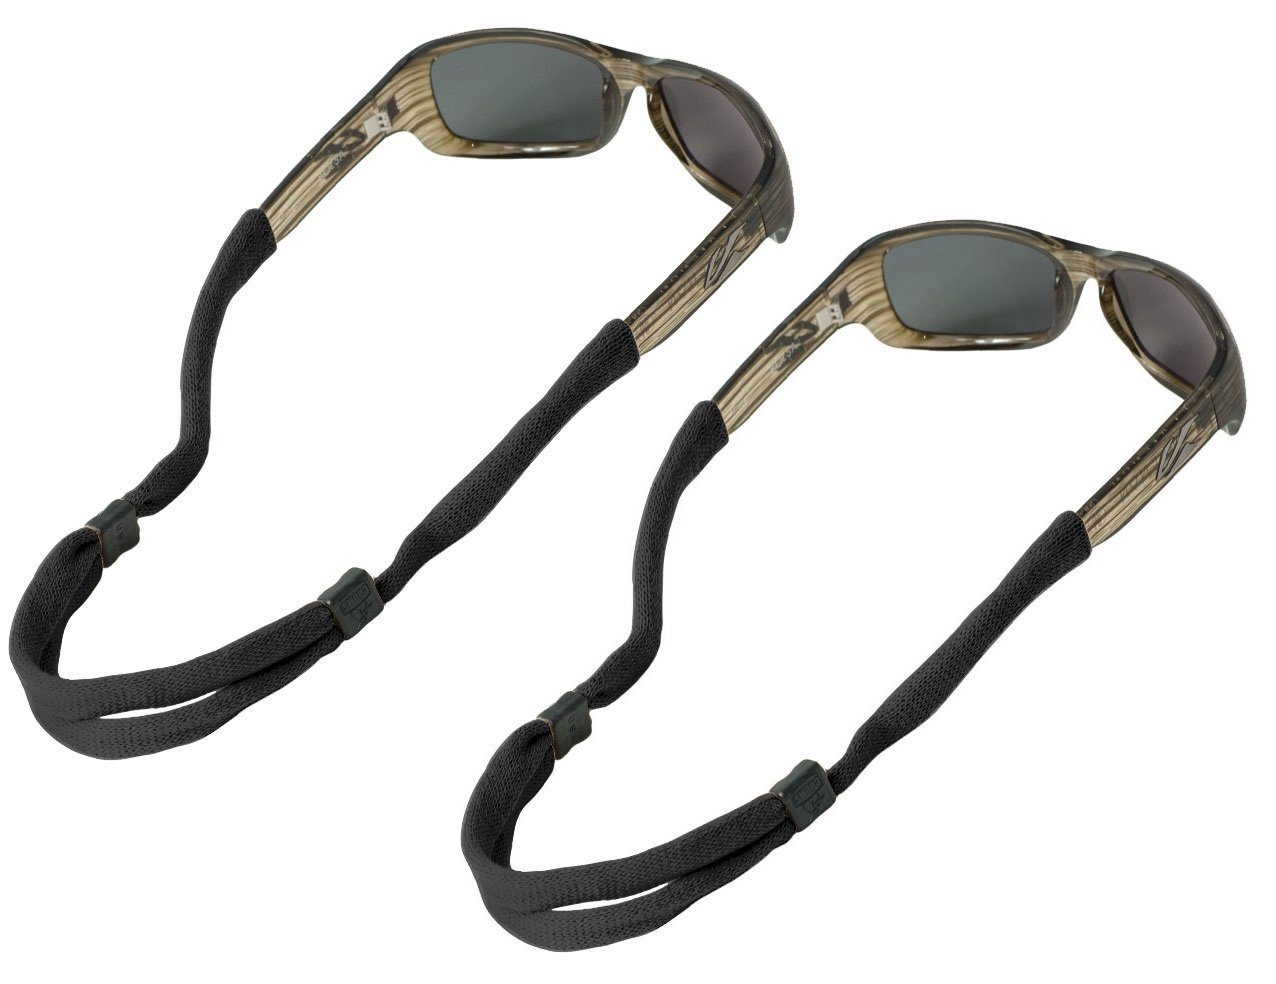 Chums No Tail Adjustable Cotton Eyeglass and Sunglass Retainer / Strap, Black (2 Pack)